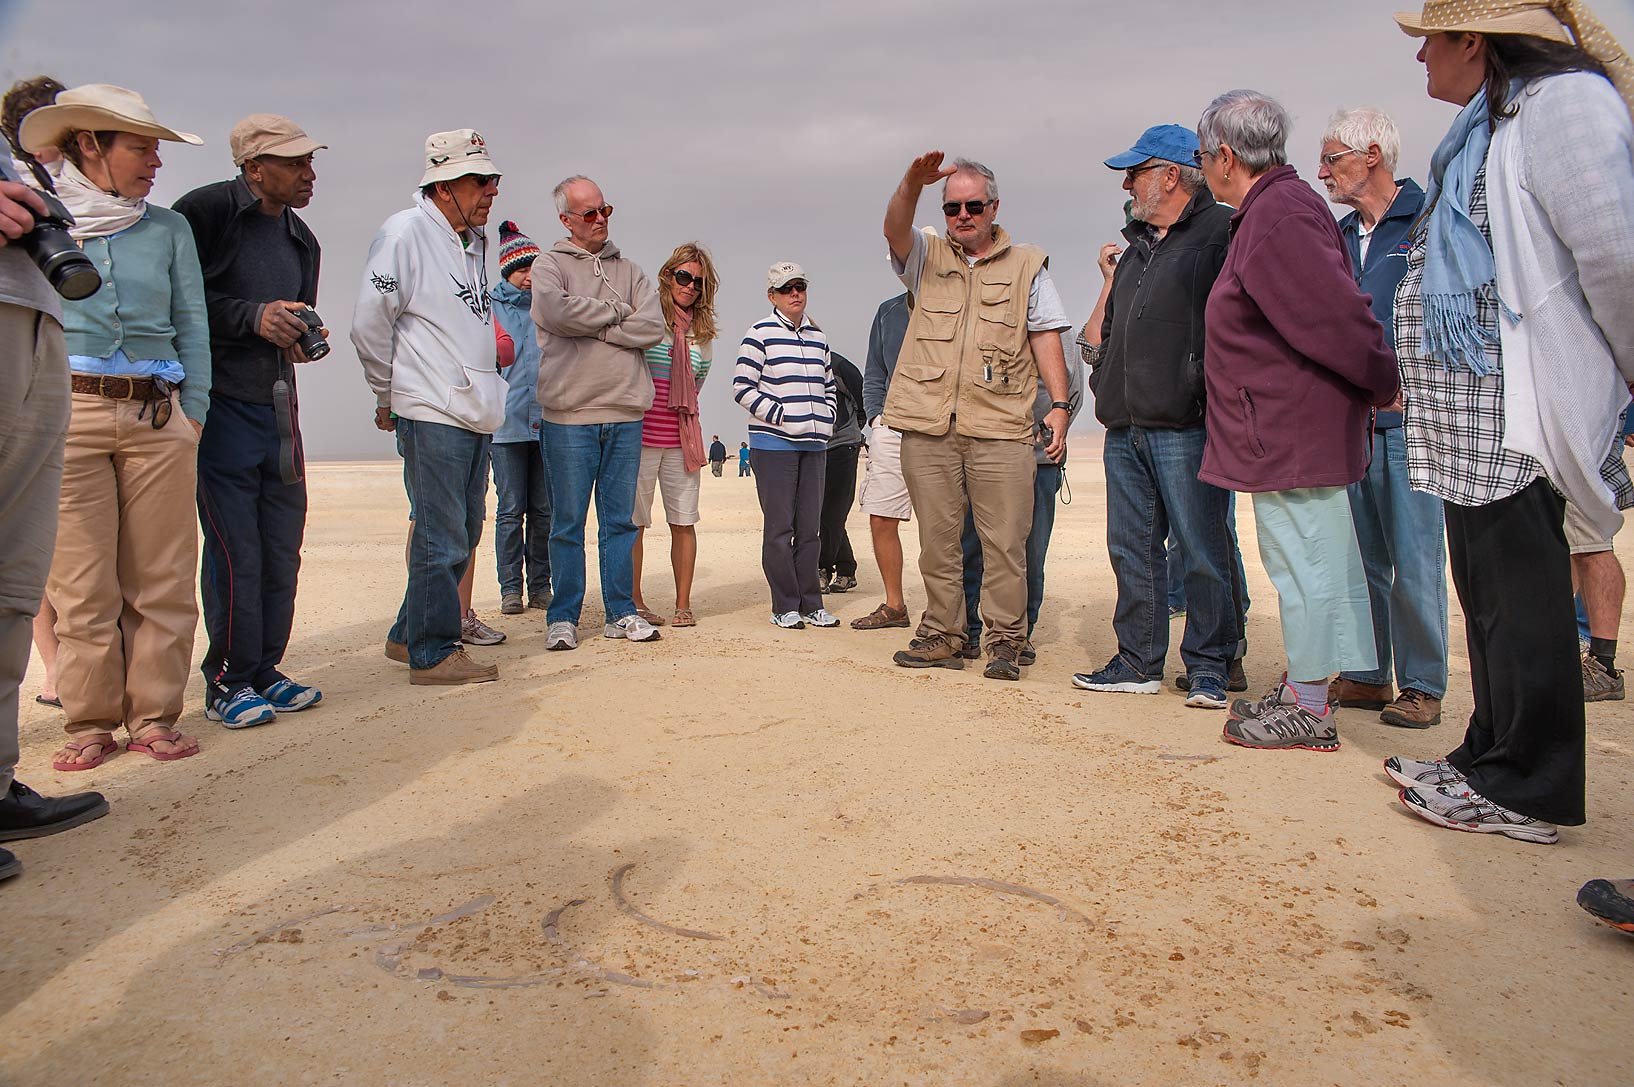 Qatar Natural History Group (QNHG) exploring...coastal sabkha in south-western Qatar